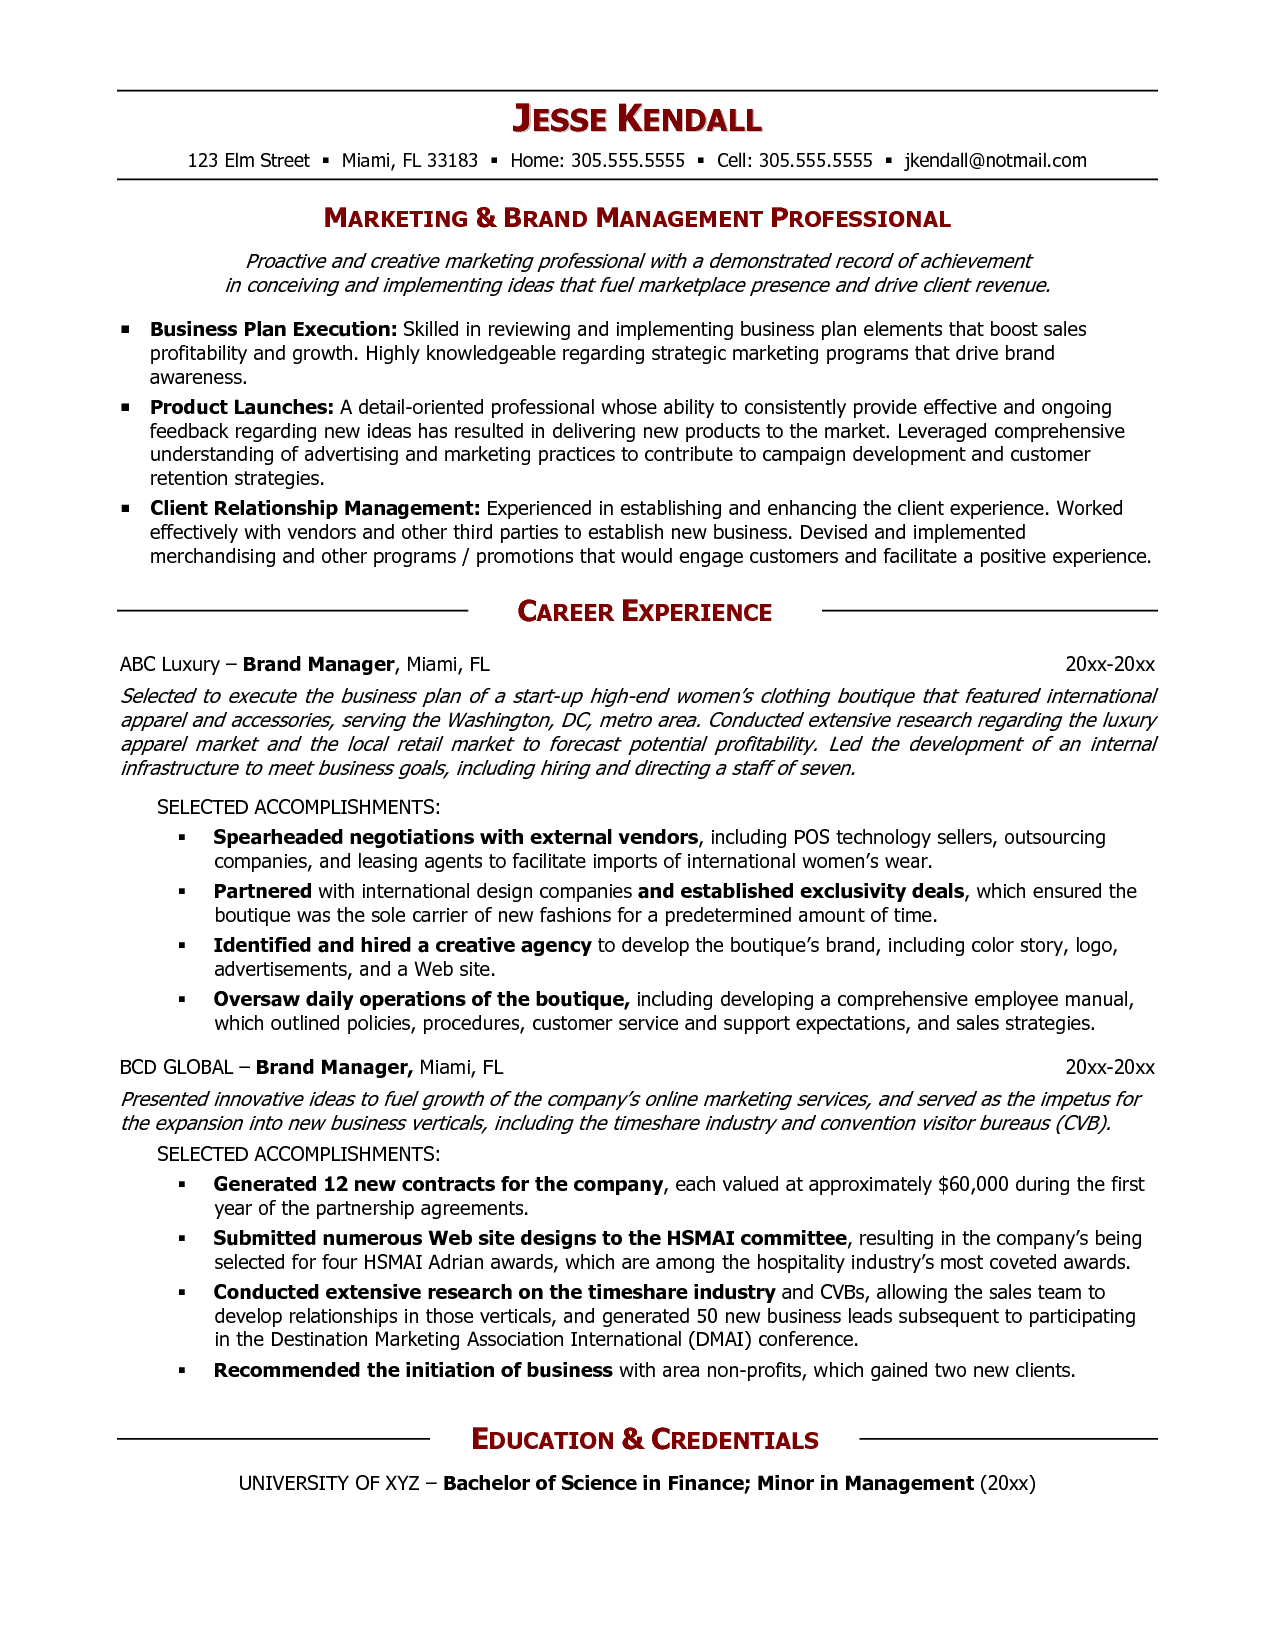 click here to this transportation logistics specialist senior logistic management resume brand manager resume example